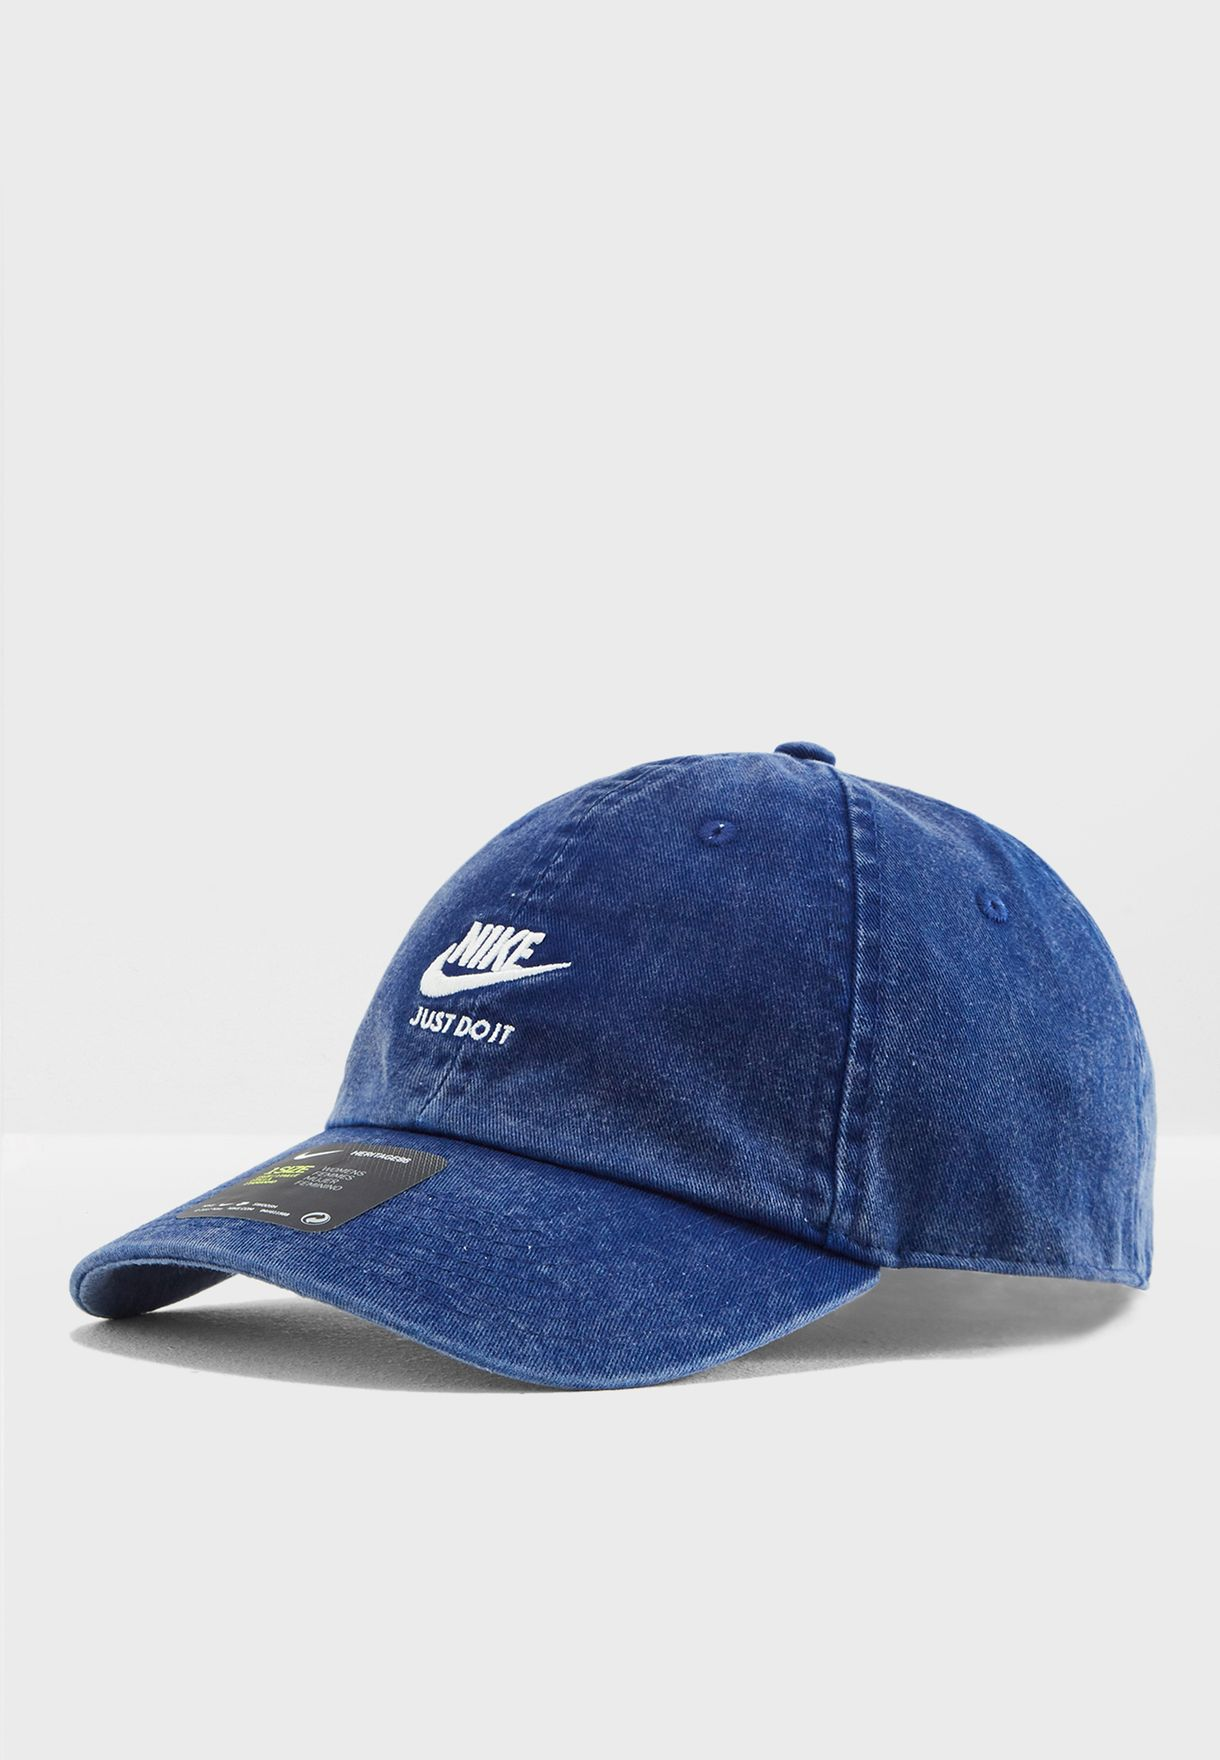 meet b6ca9 88273 Shop Nike navy Heritage 86 Cap 925421-478 for Women in UAE ...